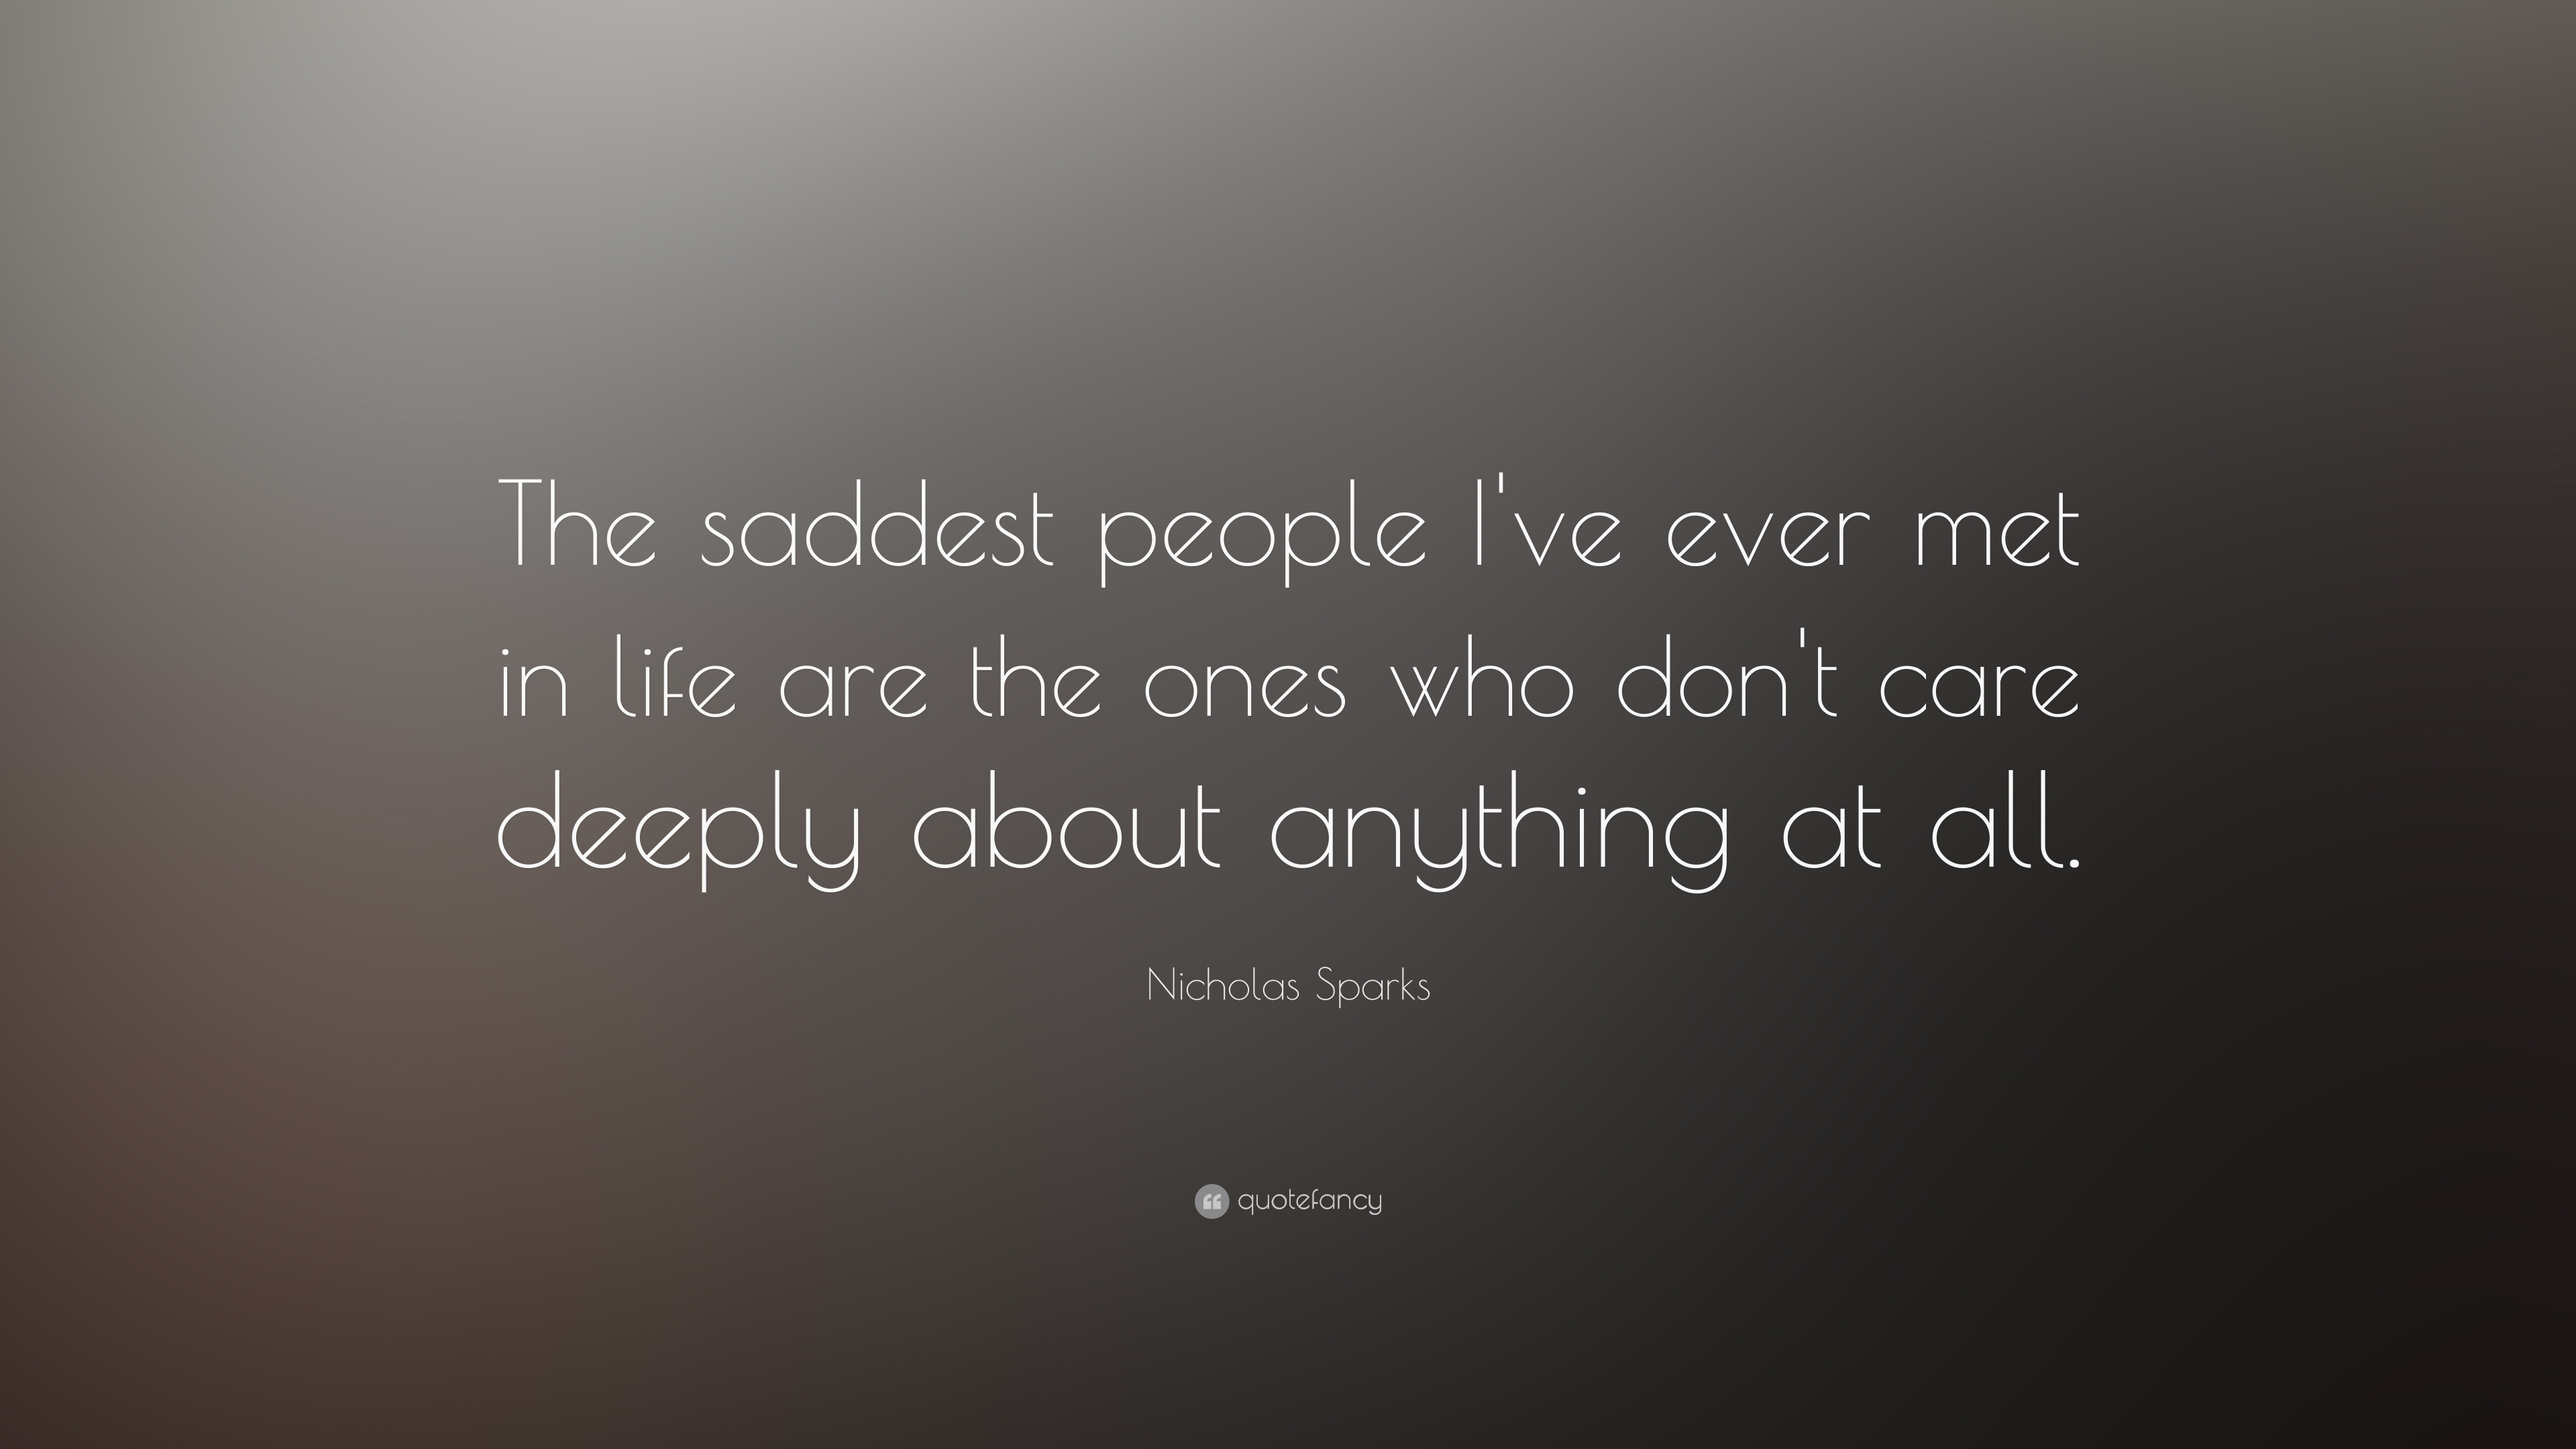 Nicholas Sparks Quote The Saddest People Ive Ever Met In Life Are